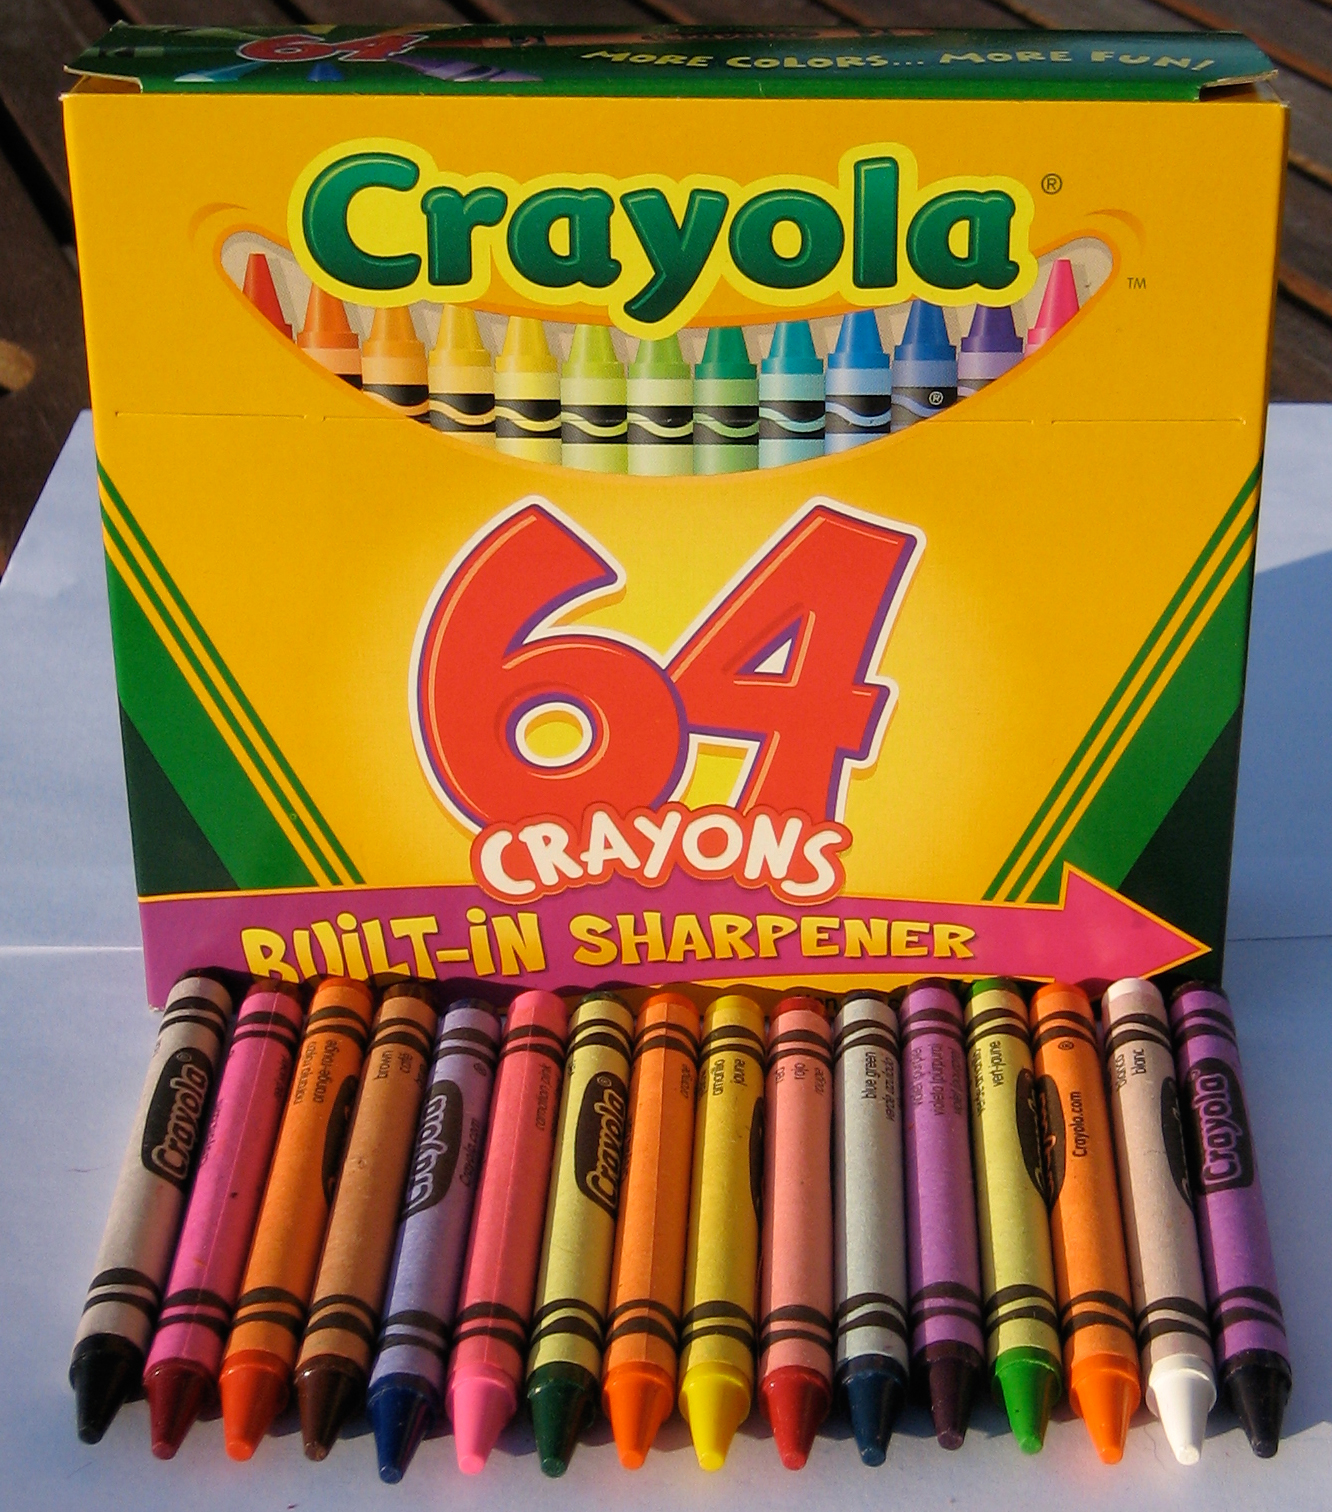 history of crayola It's now a childhood classic, but the modern crayola crayon has roots in the same company where carbon black was made for car tires at the turn of the 20th century.